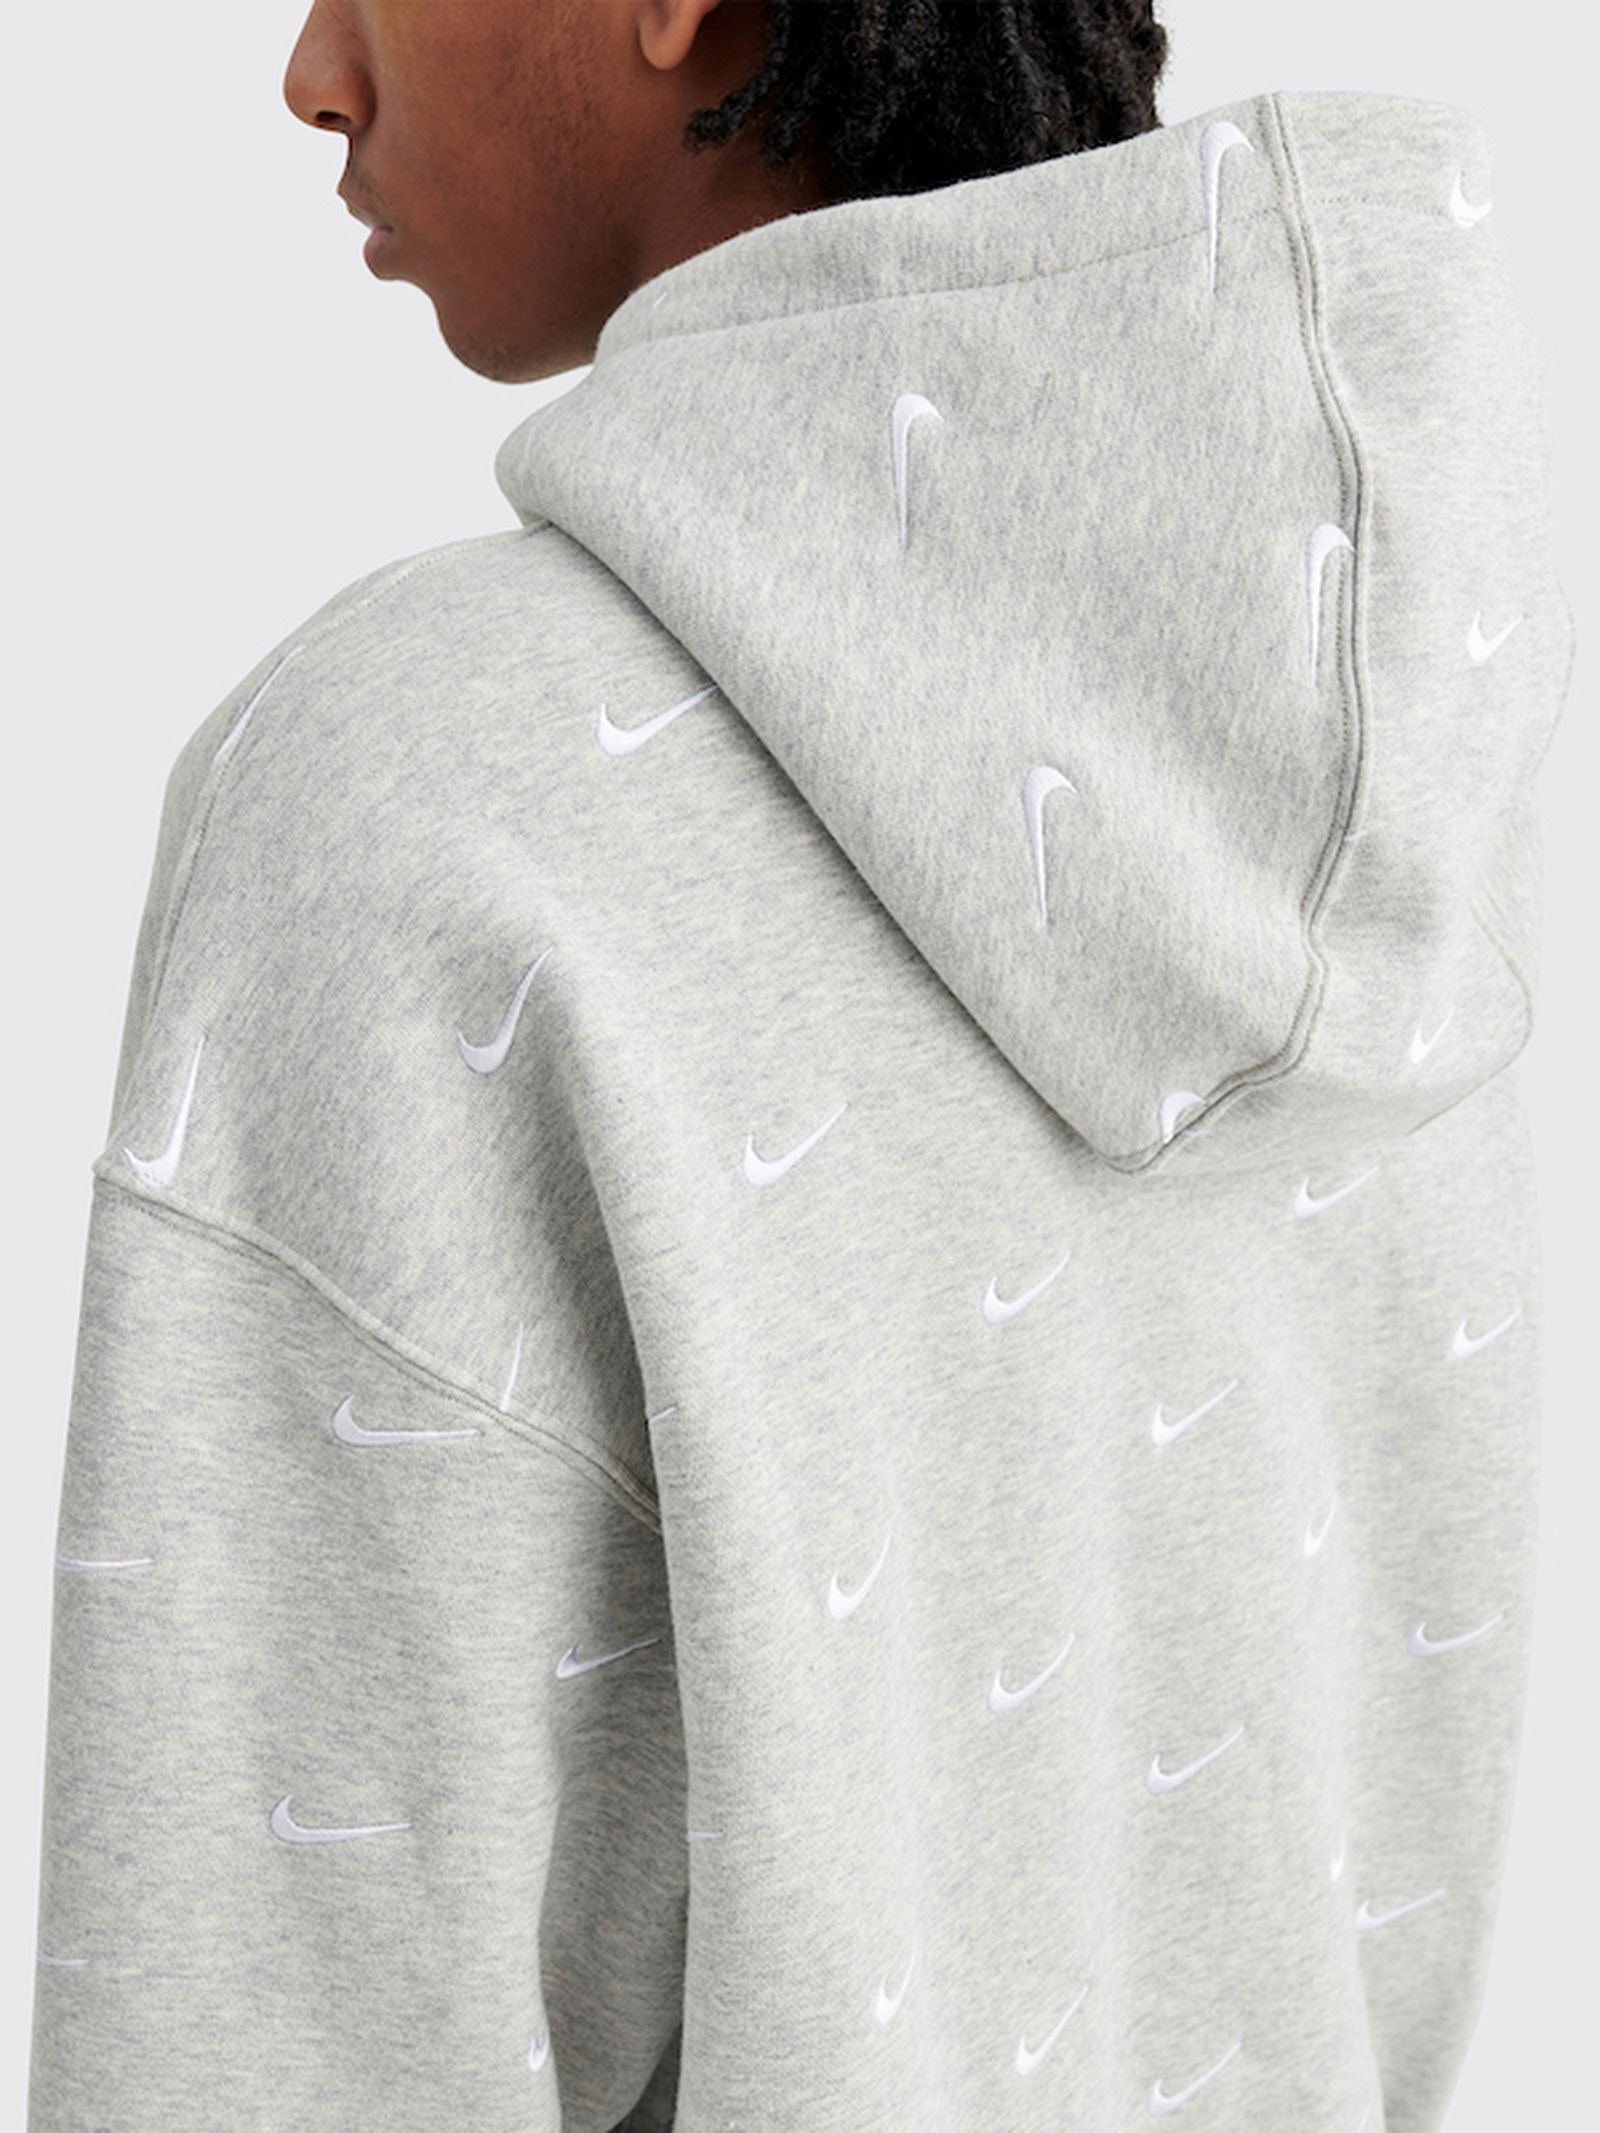 Nike All Over Swoosh Hoodie